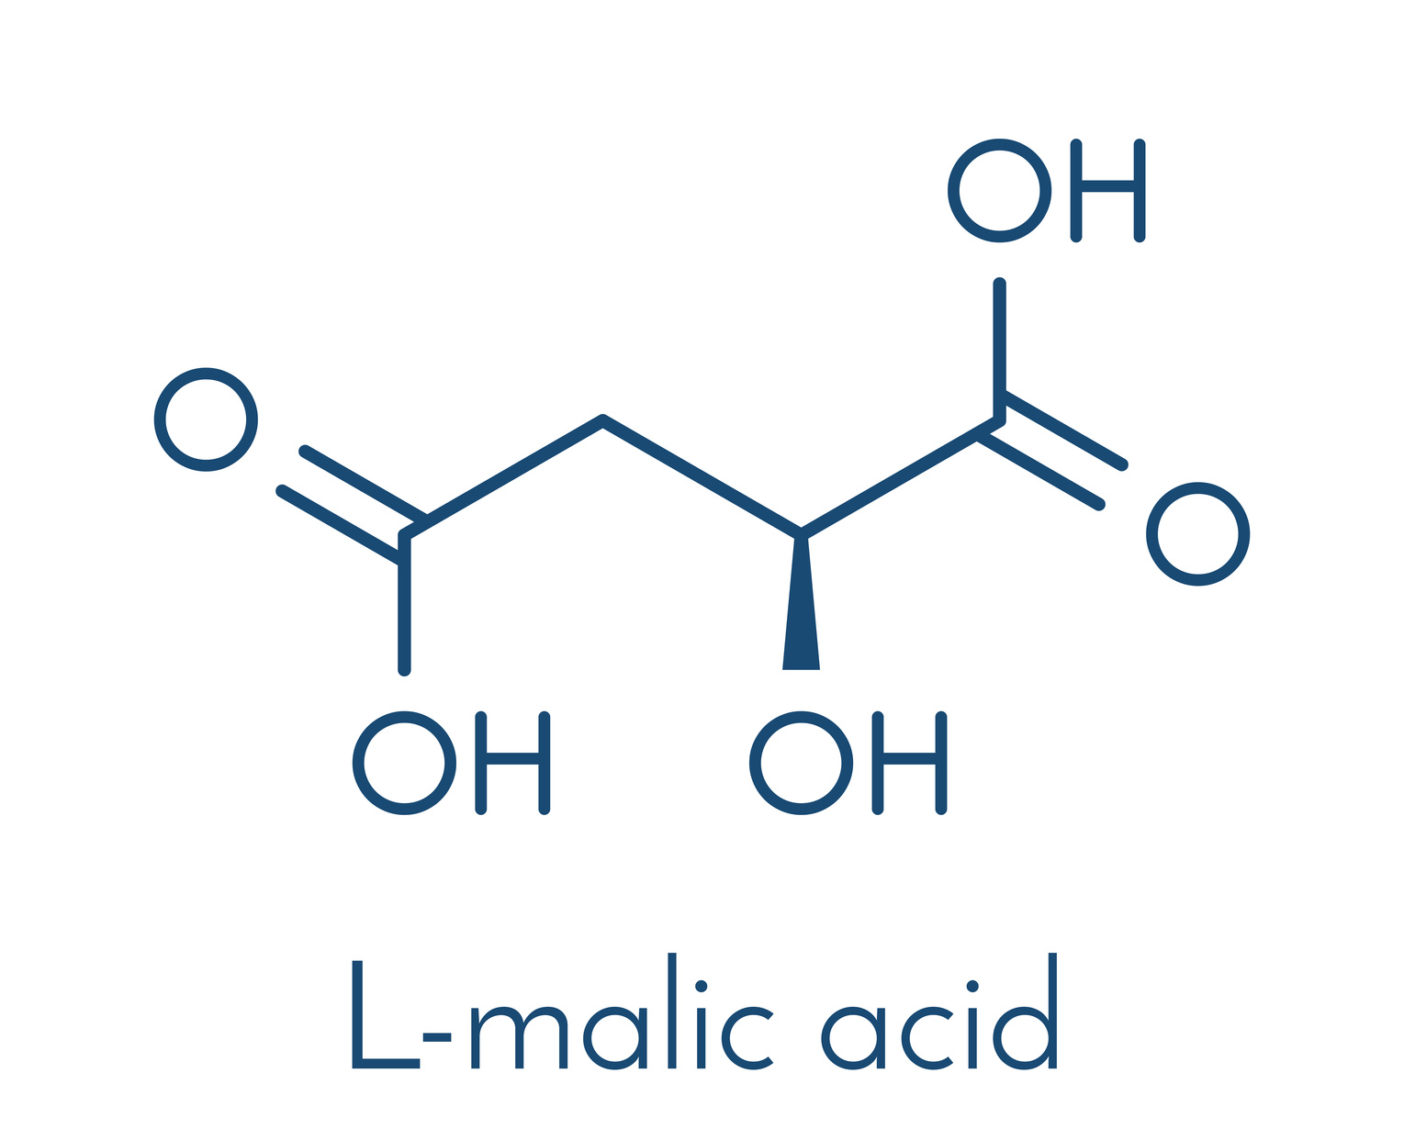 Malate; Äpfelsäure;Di-C12-13 Alkyl Malate